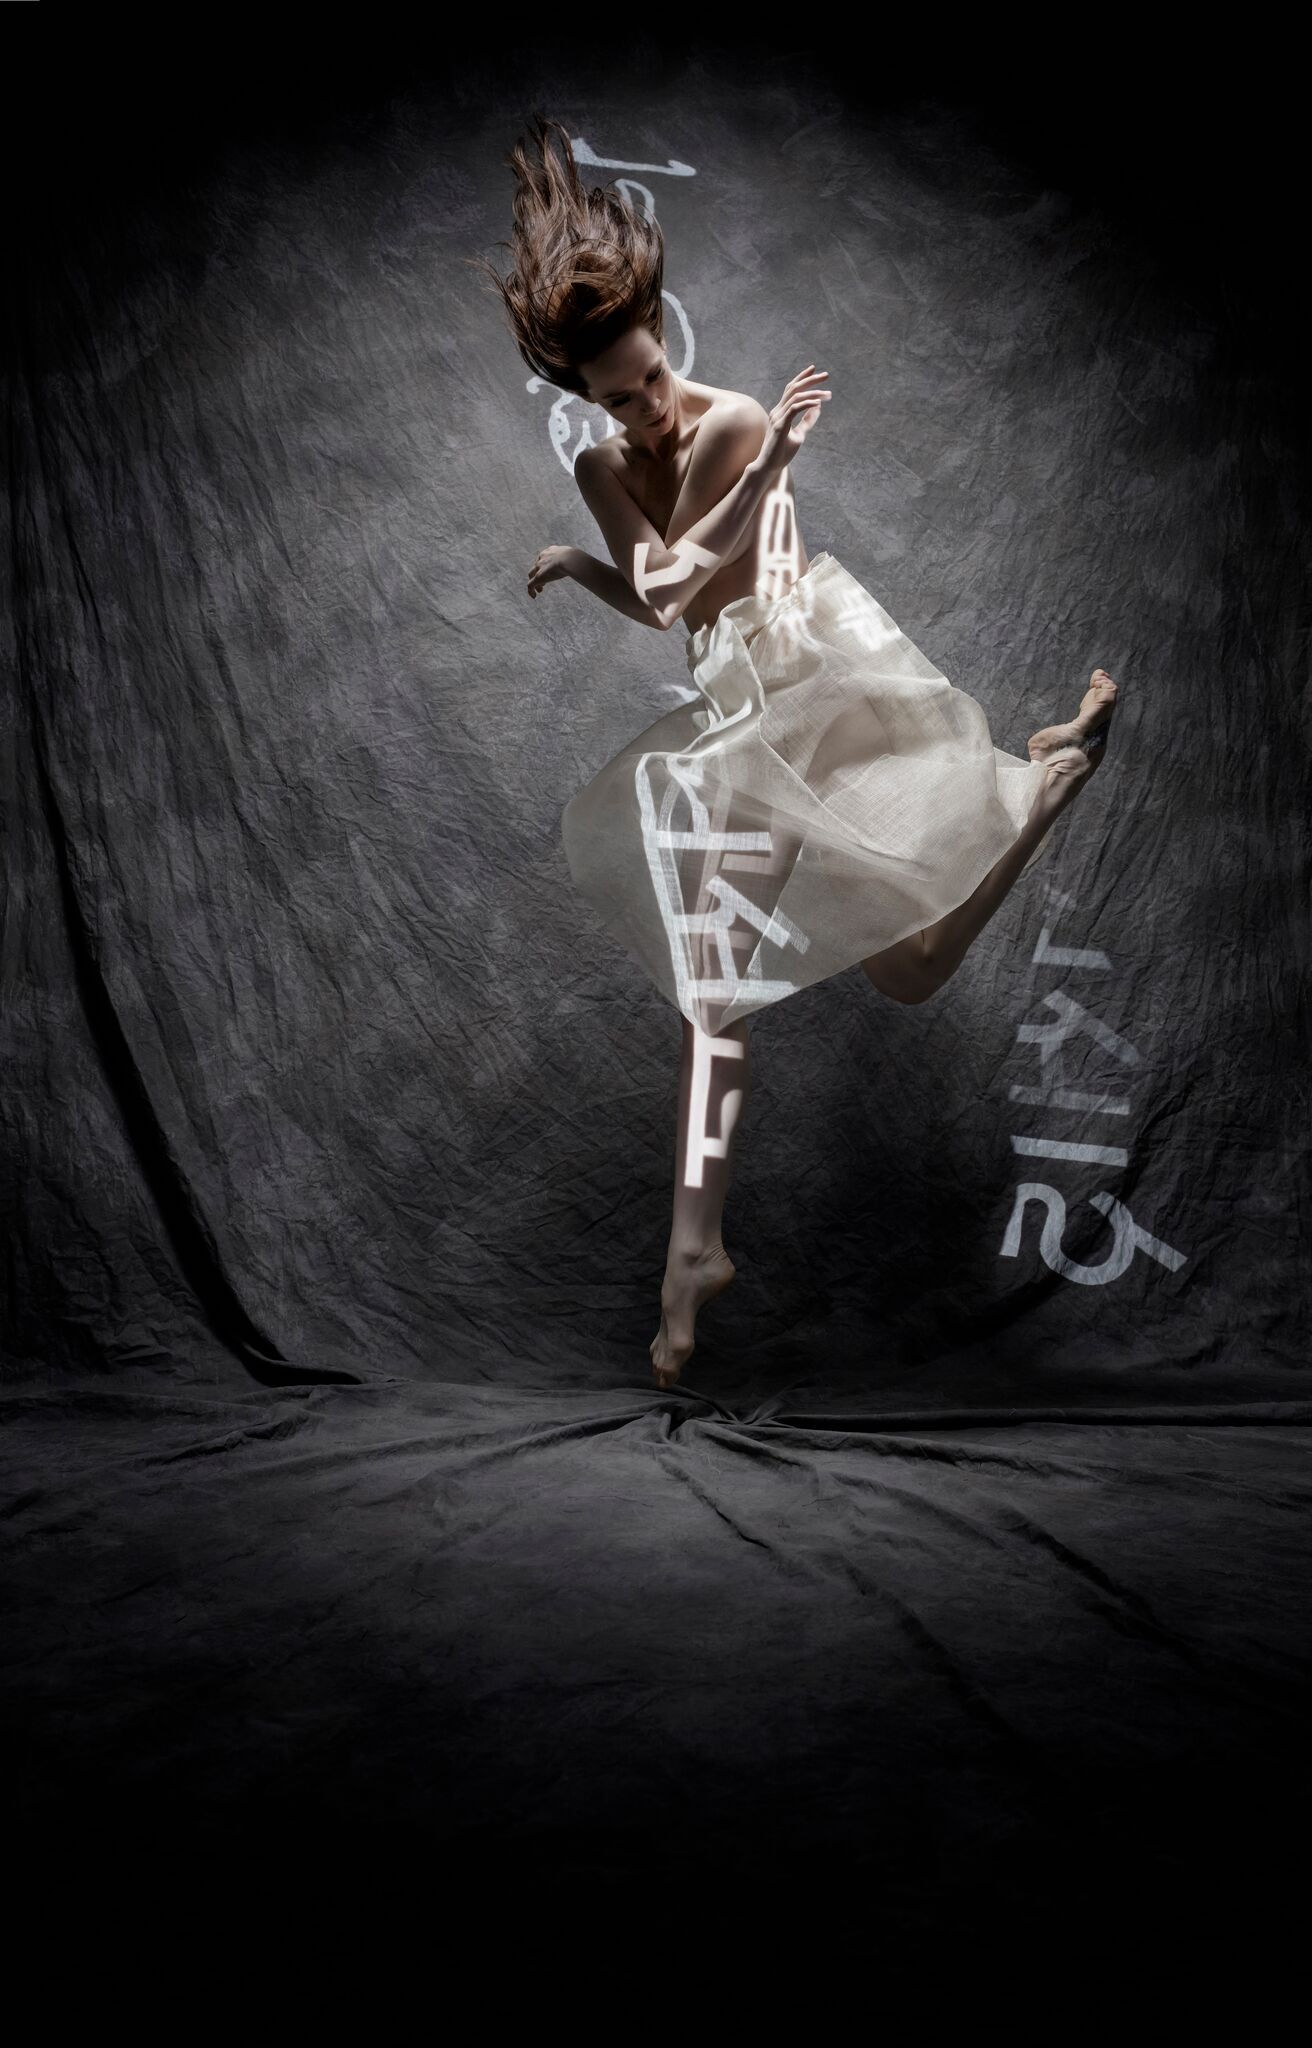 A promotional image for the language-inspired ballet